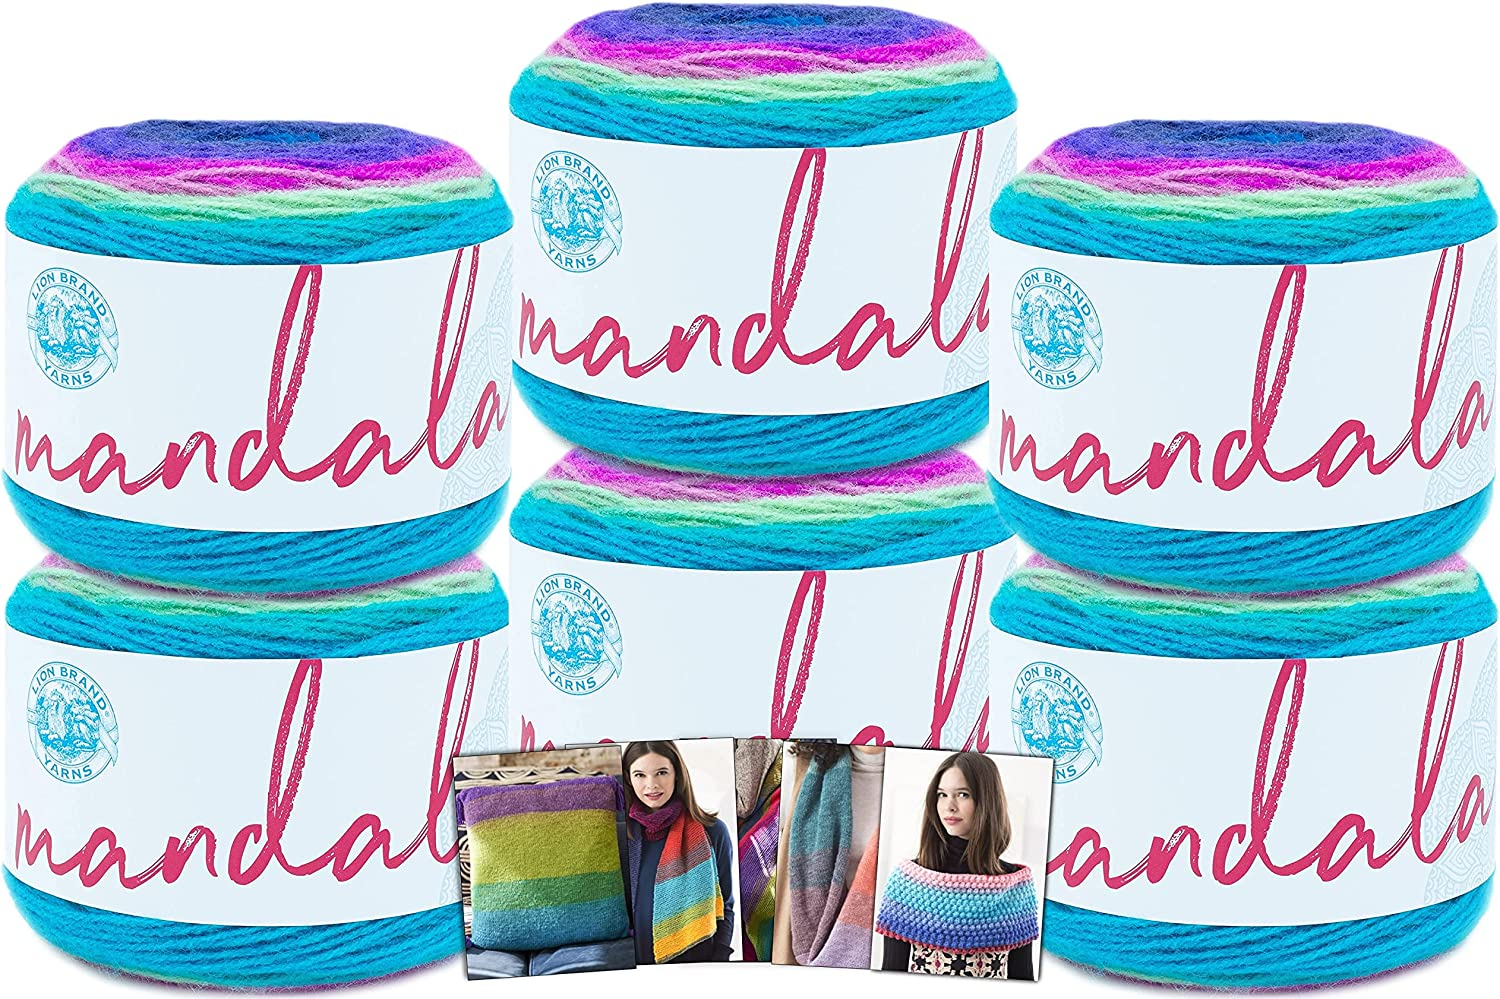 Lion Brand Mandala Yarn - 6 Pack in Weekly update Tr Color Pattern Cards with Award-winning store